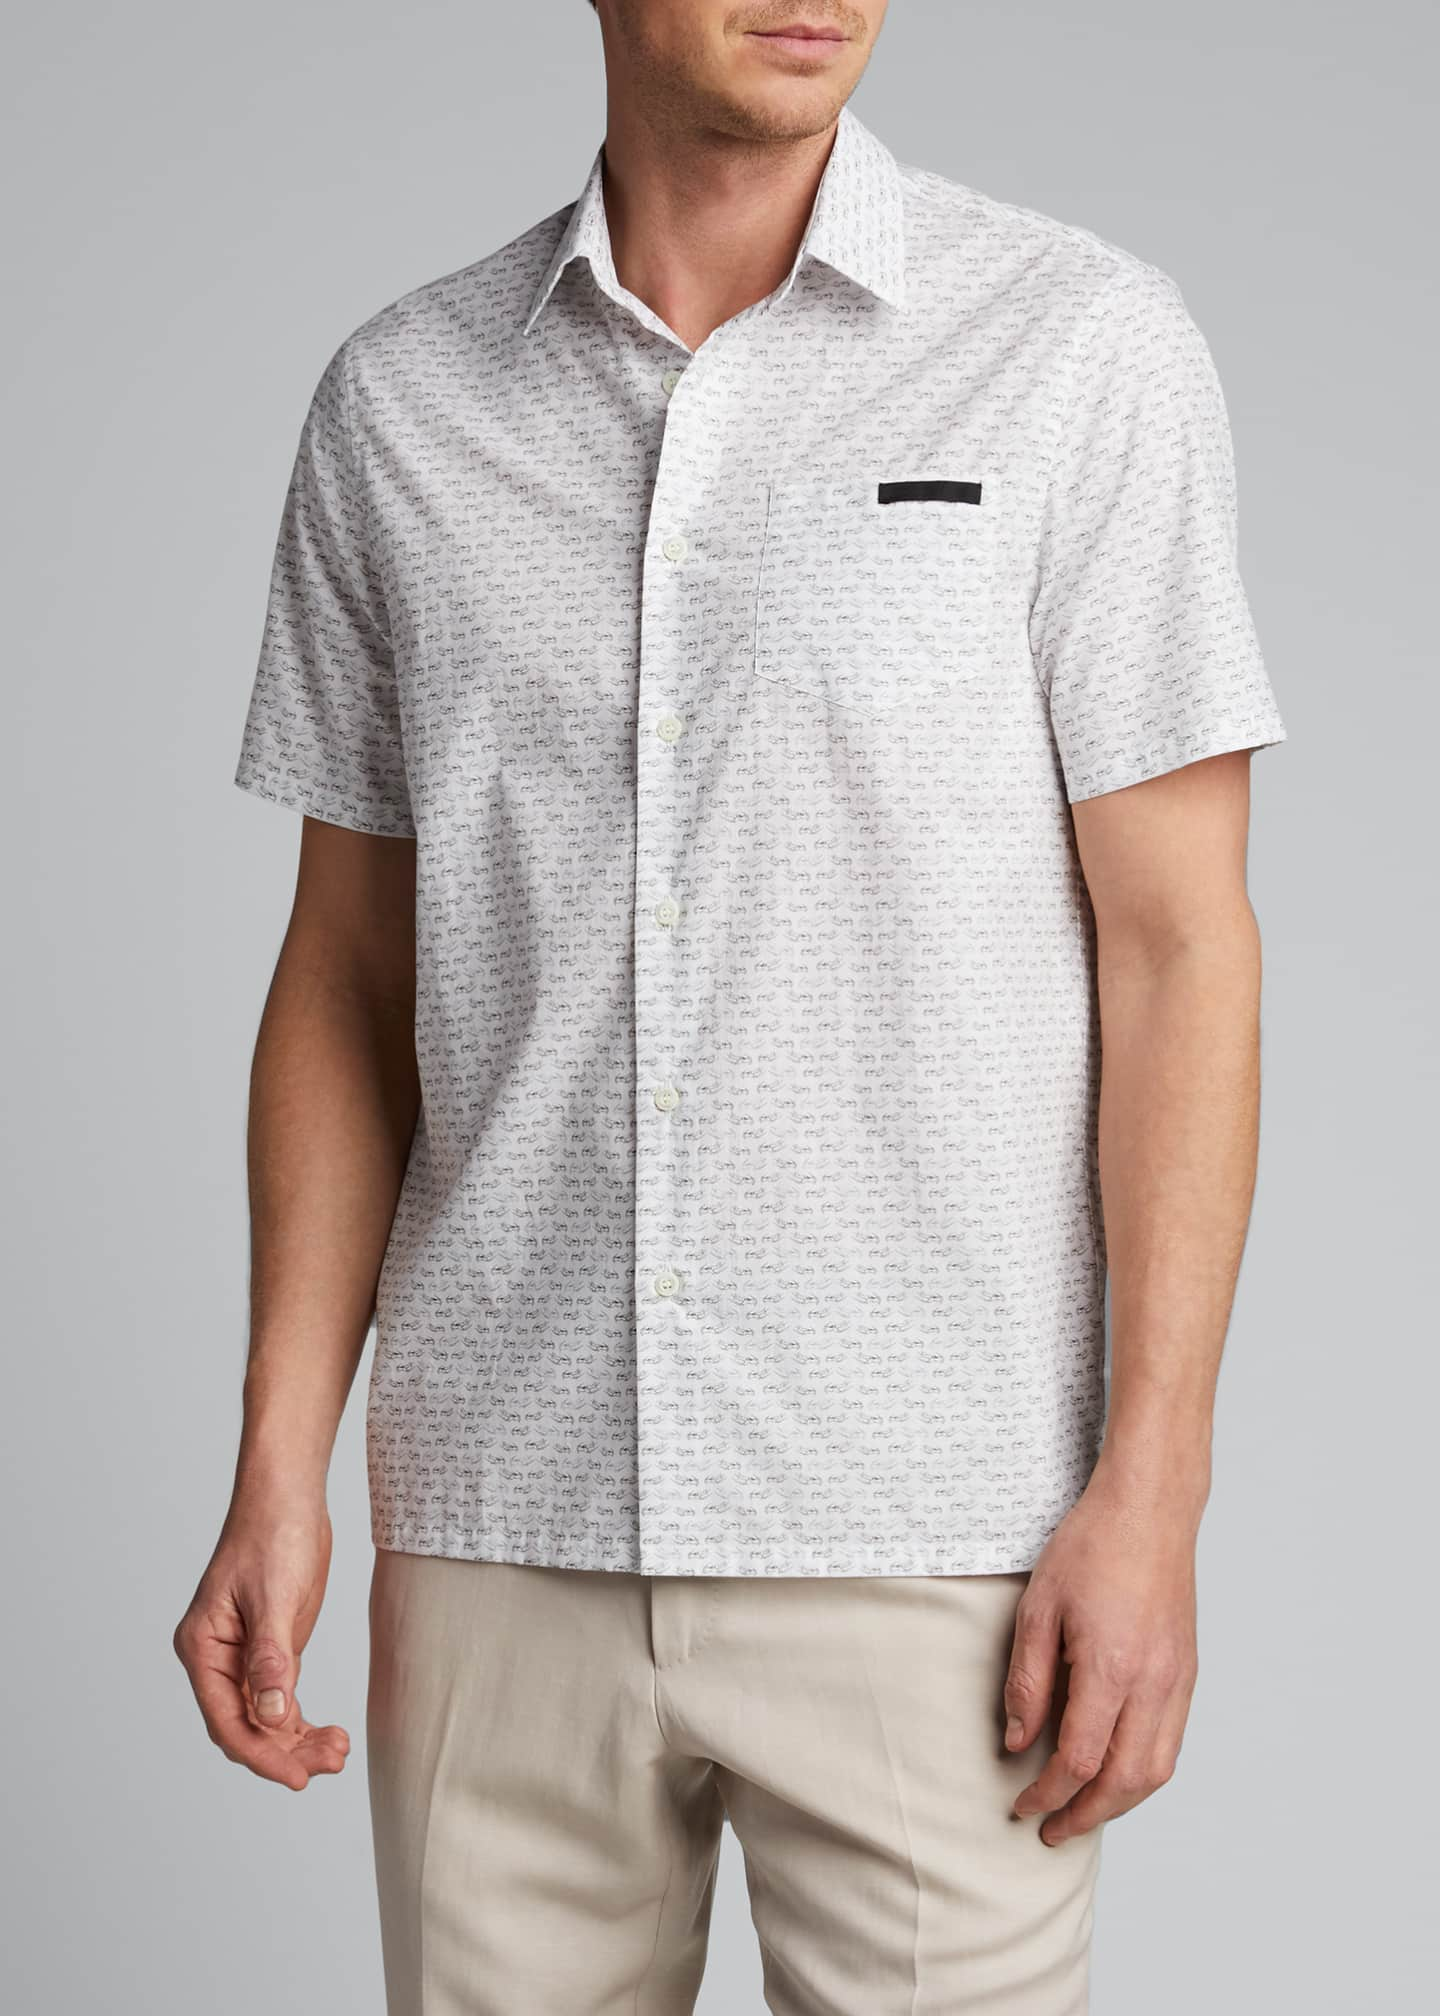 Image 3 of 5: Men's Journey Graphic Poplin Short-Sleeve Shirt